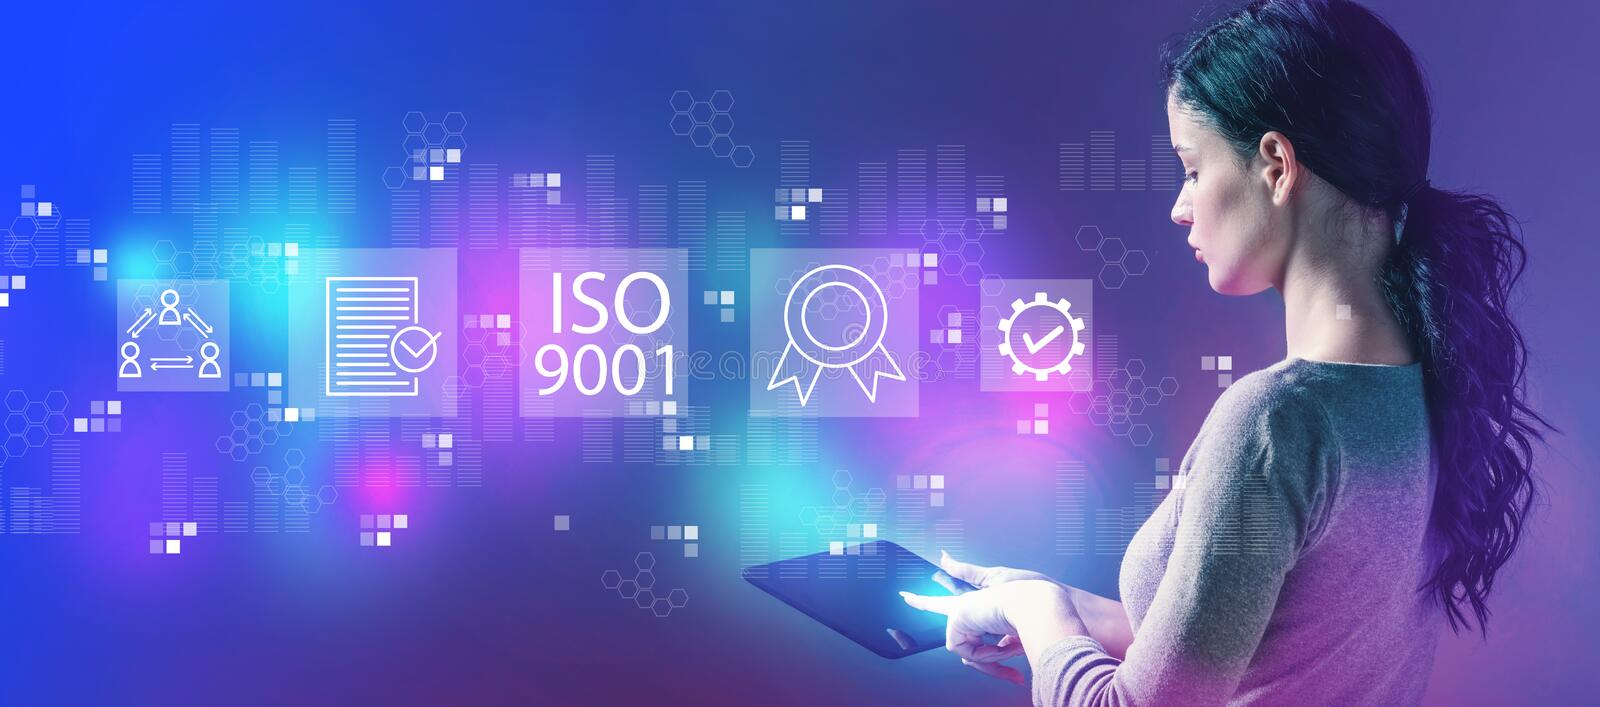 ISO 9001 with woman using a tablet royalty free stock photo